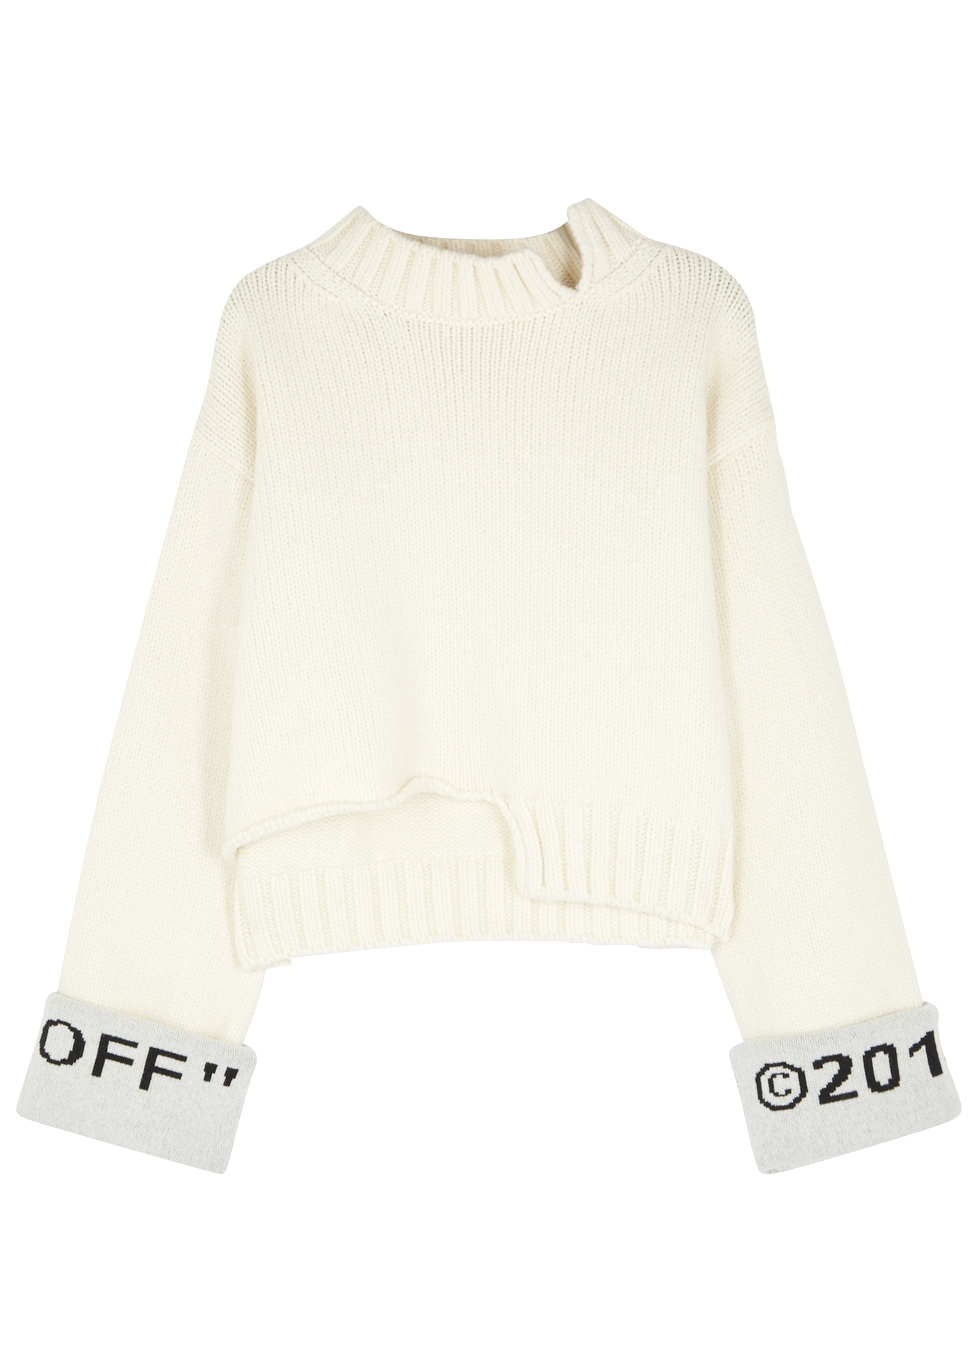 Get To Buy For Sale Cheap Huge Surprise Intarsia Knitted Top - IT38 Off-white Classic Sale Online Cheap With Mastercard NOq35h5t